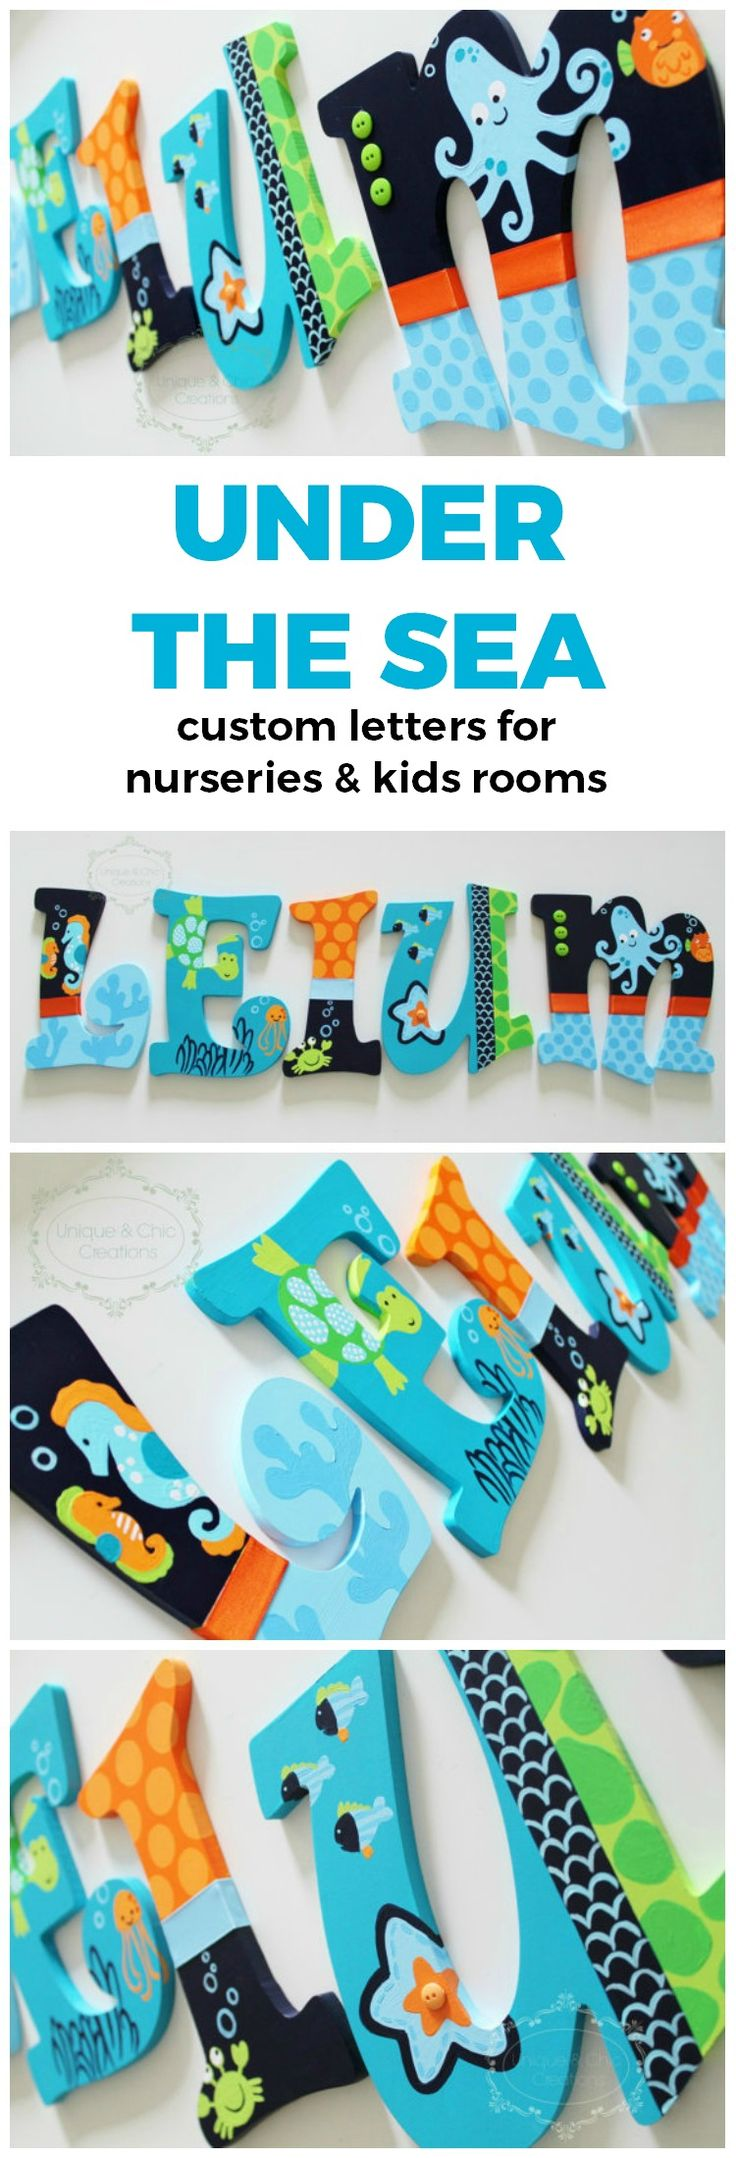 Navy Lime Green and Aqua Underwater Ocean Themed Wooden Letters for Nursery or Bedroom | Unique and Chic Creations custom kids room letters